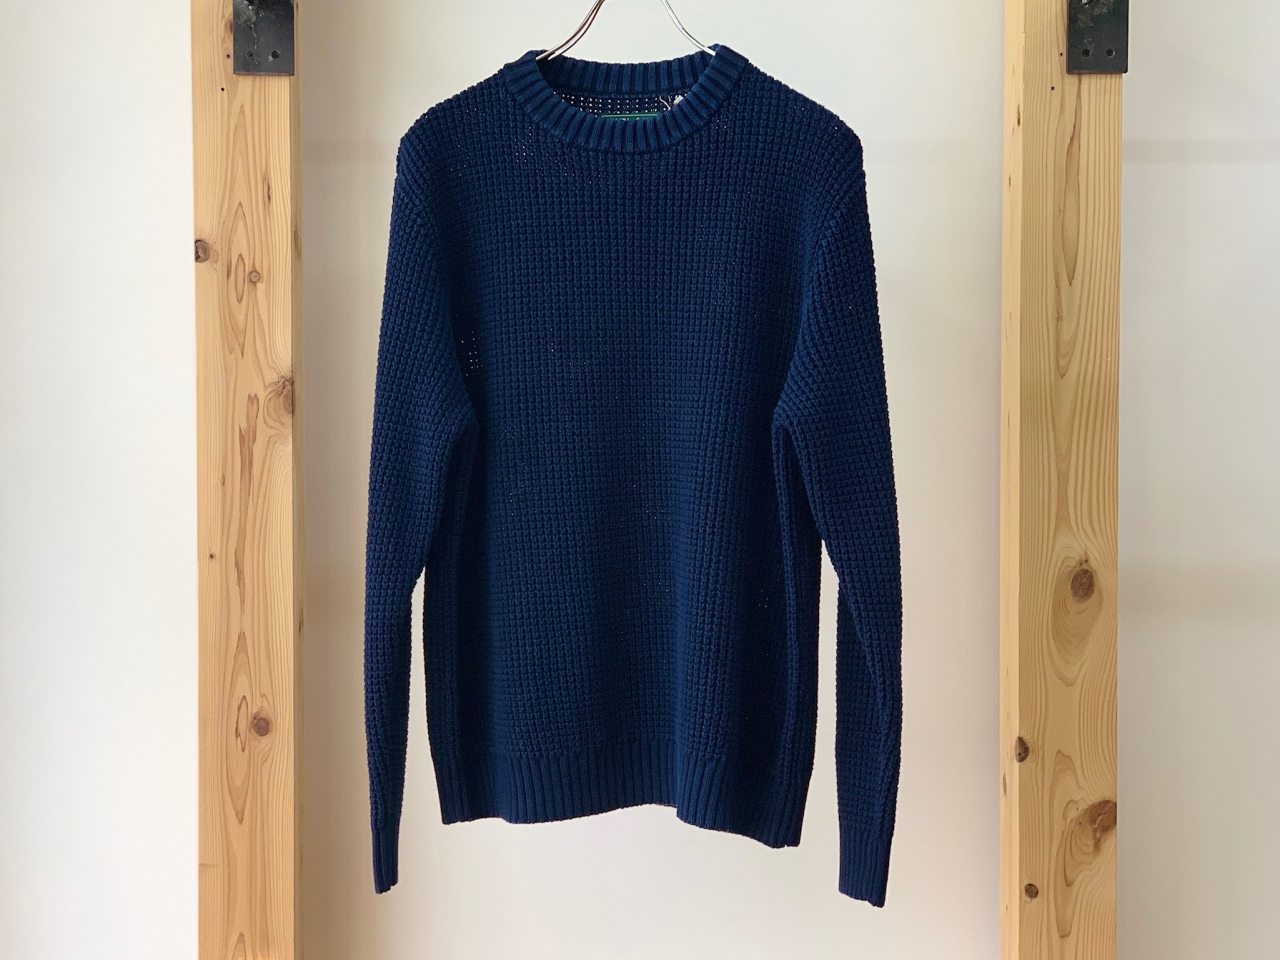 BROWN by 2-tacs - ECOLOGY KNIT -